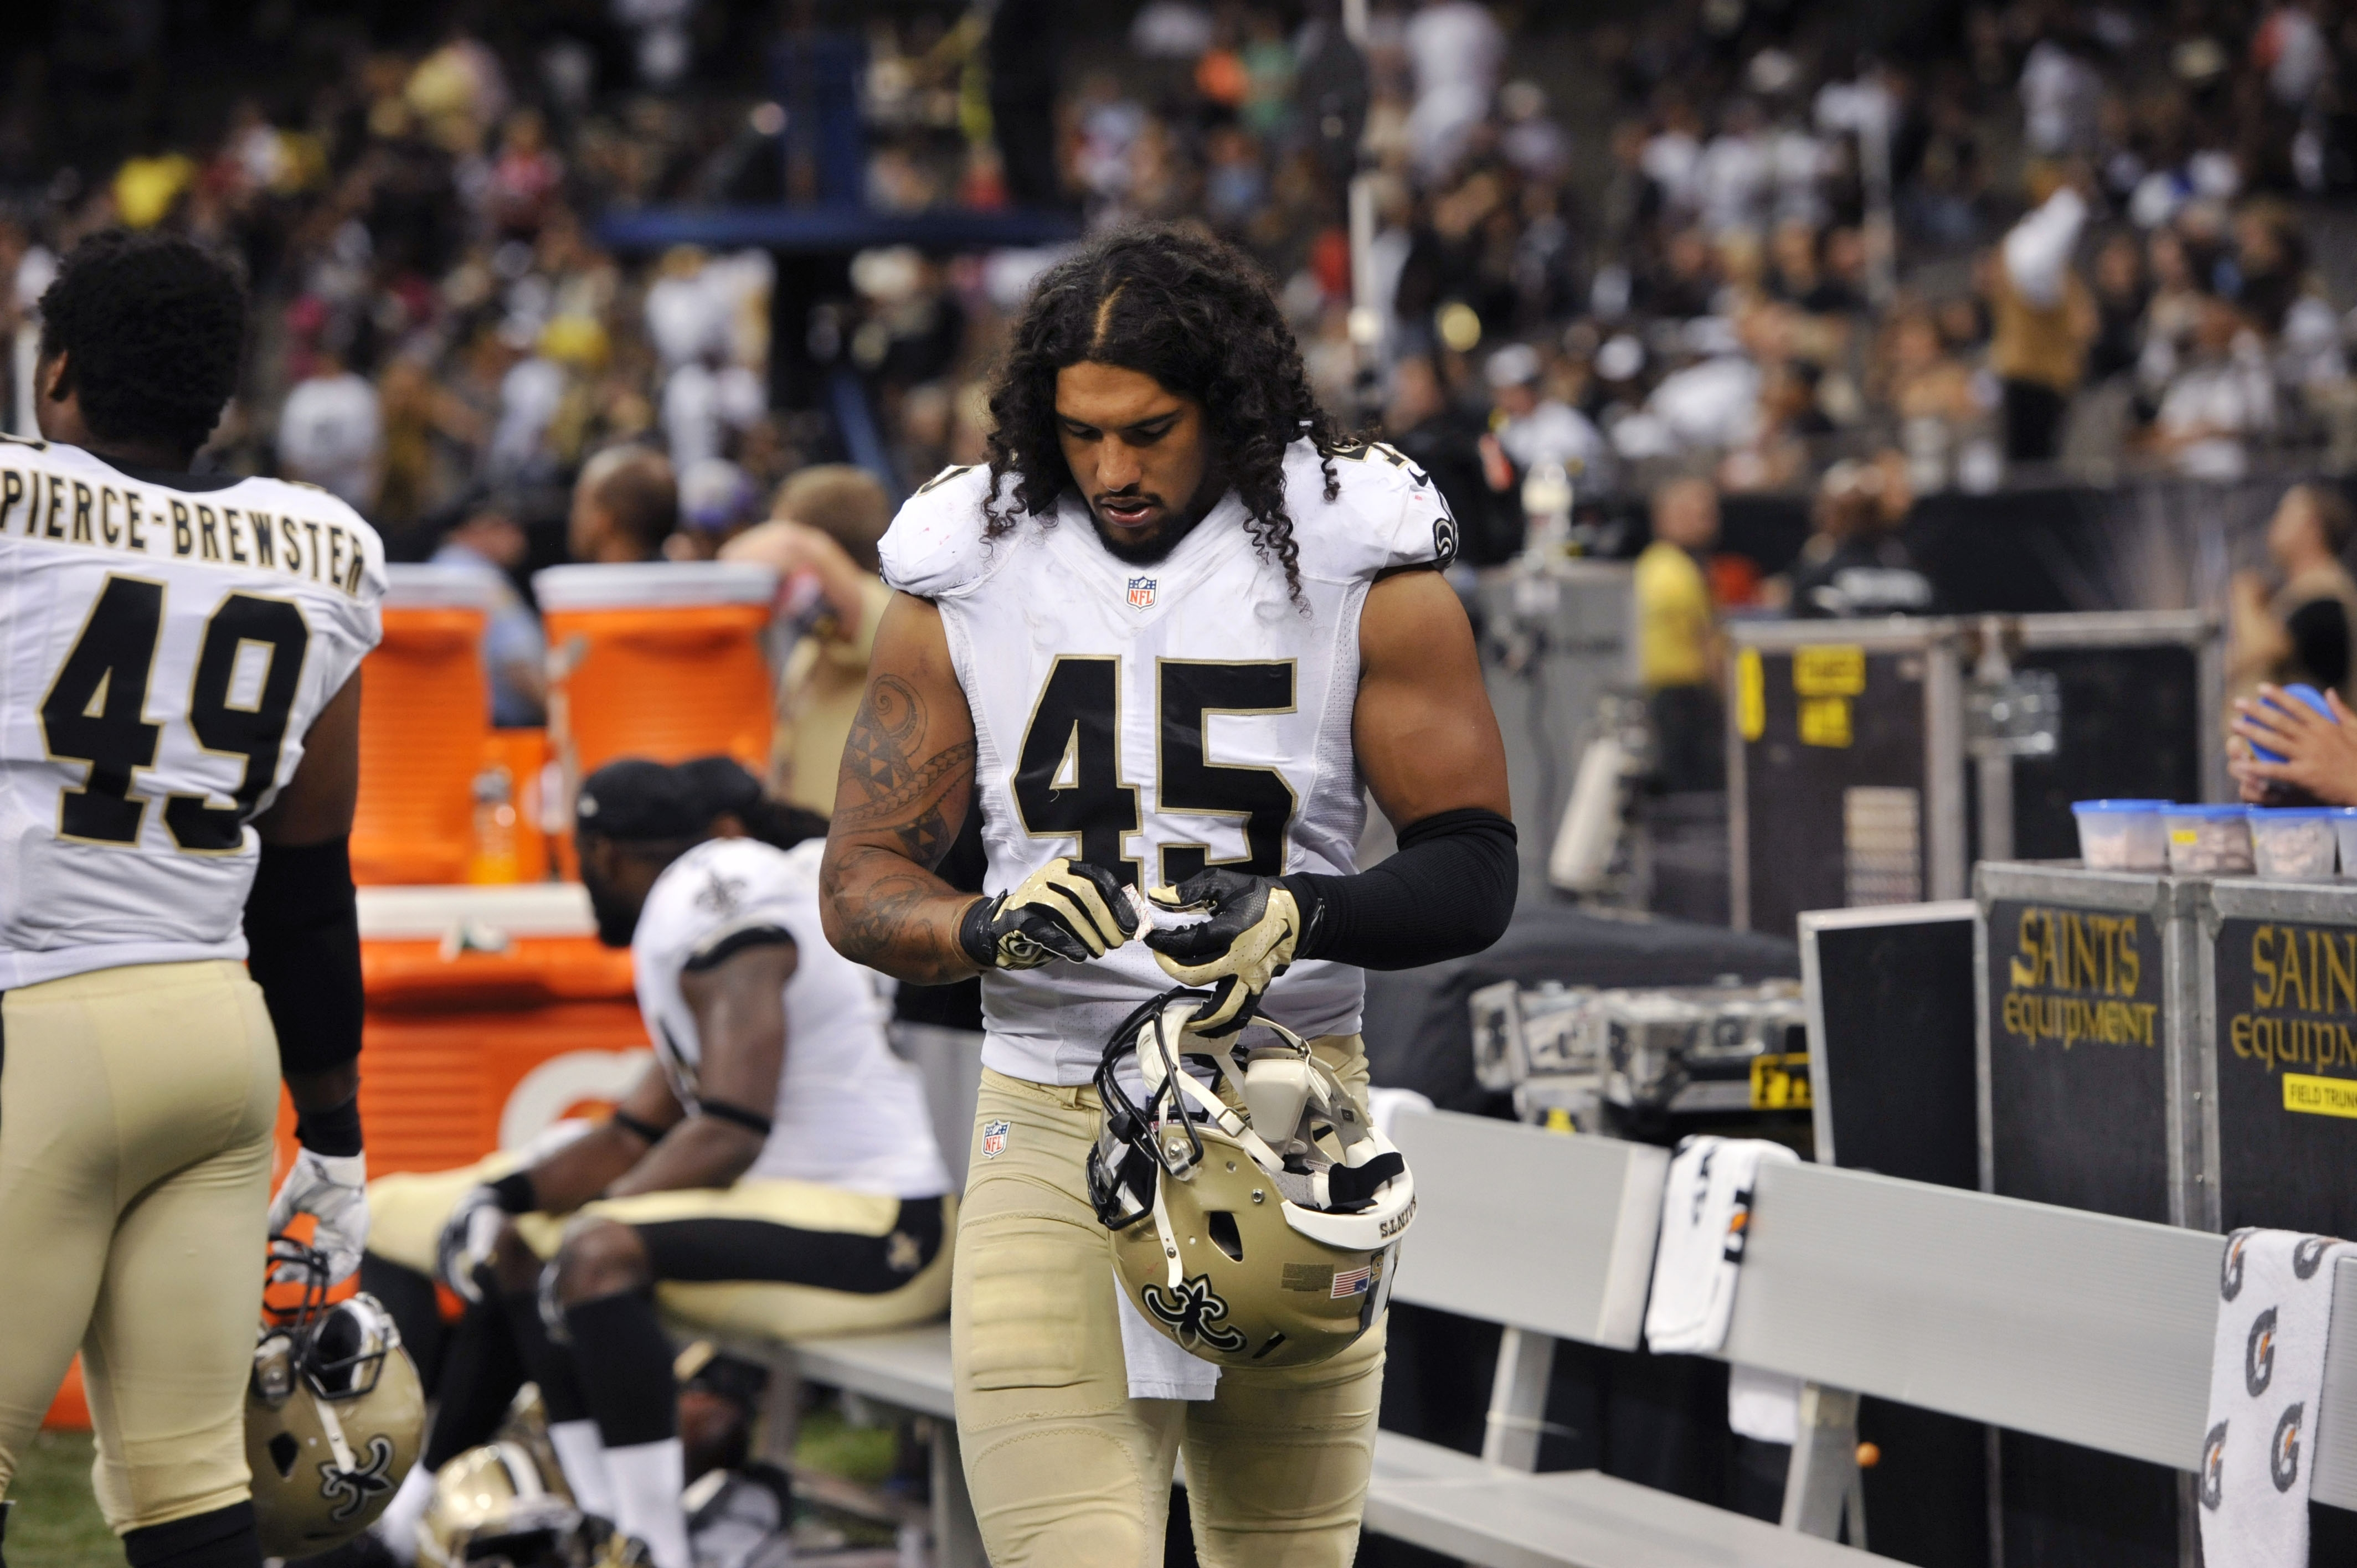 In this Aug. 22, 2015, photo, New Orleans Saints outside linebacker Hau'oli Kikaha (45) walks on the sideline in the second half of an NFL preseason football game against the New England Patriots in New Orleans. Kikaha projects a laid back, island vibe as